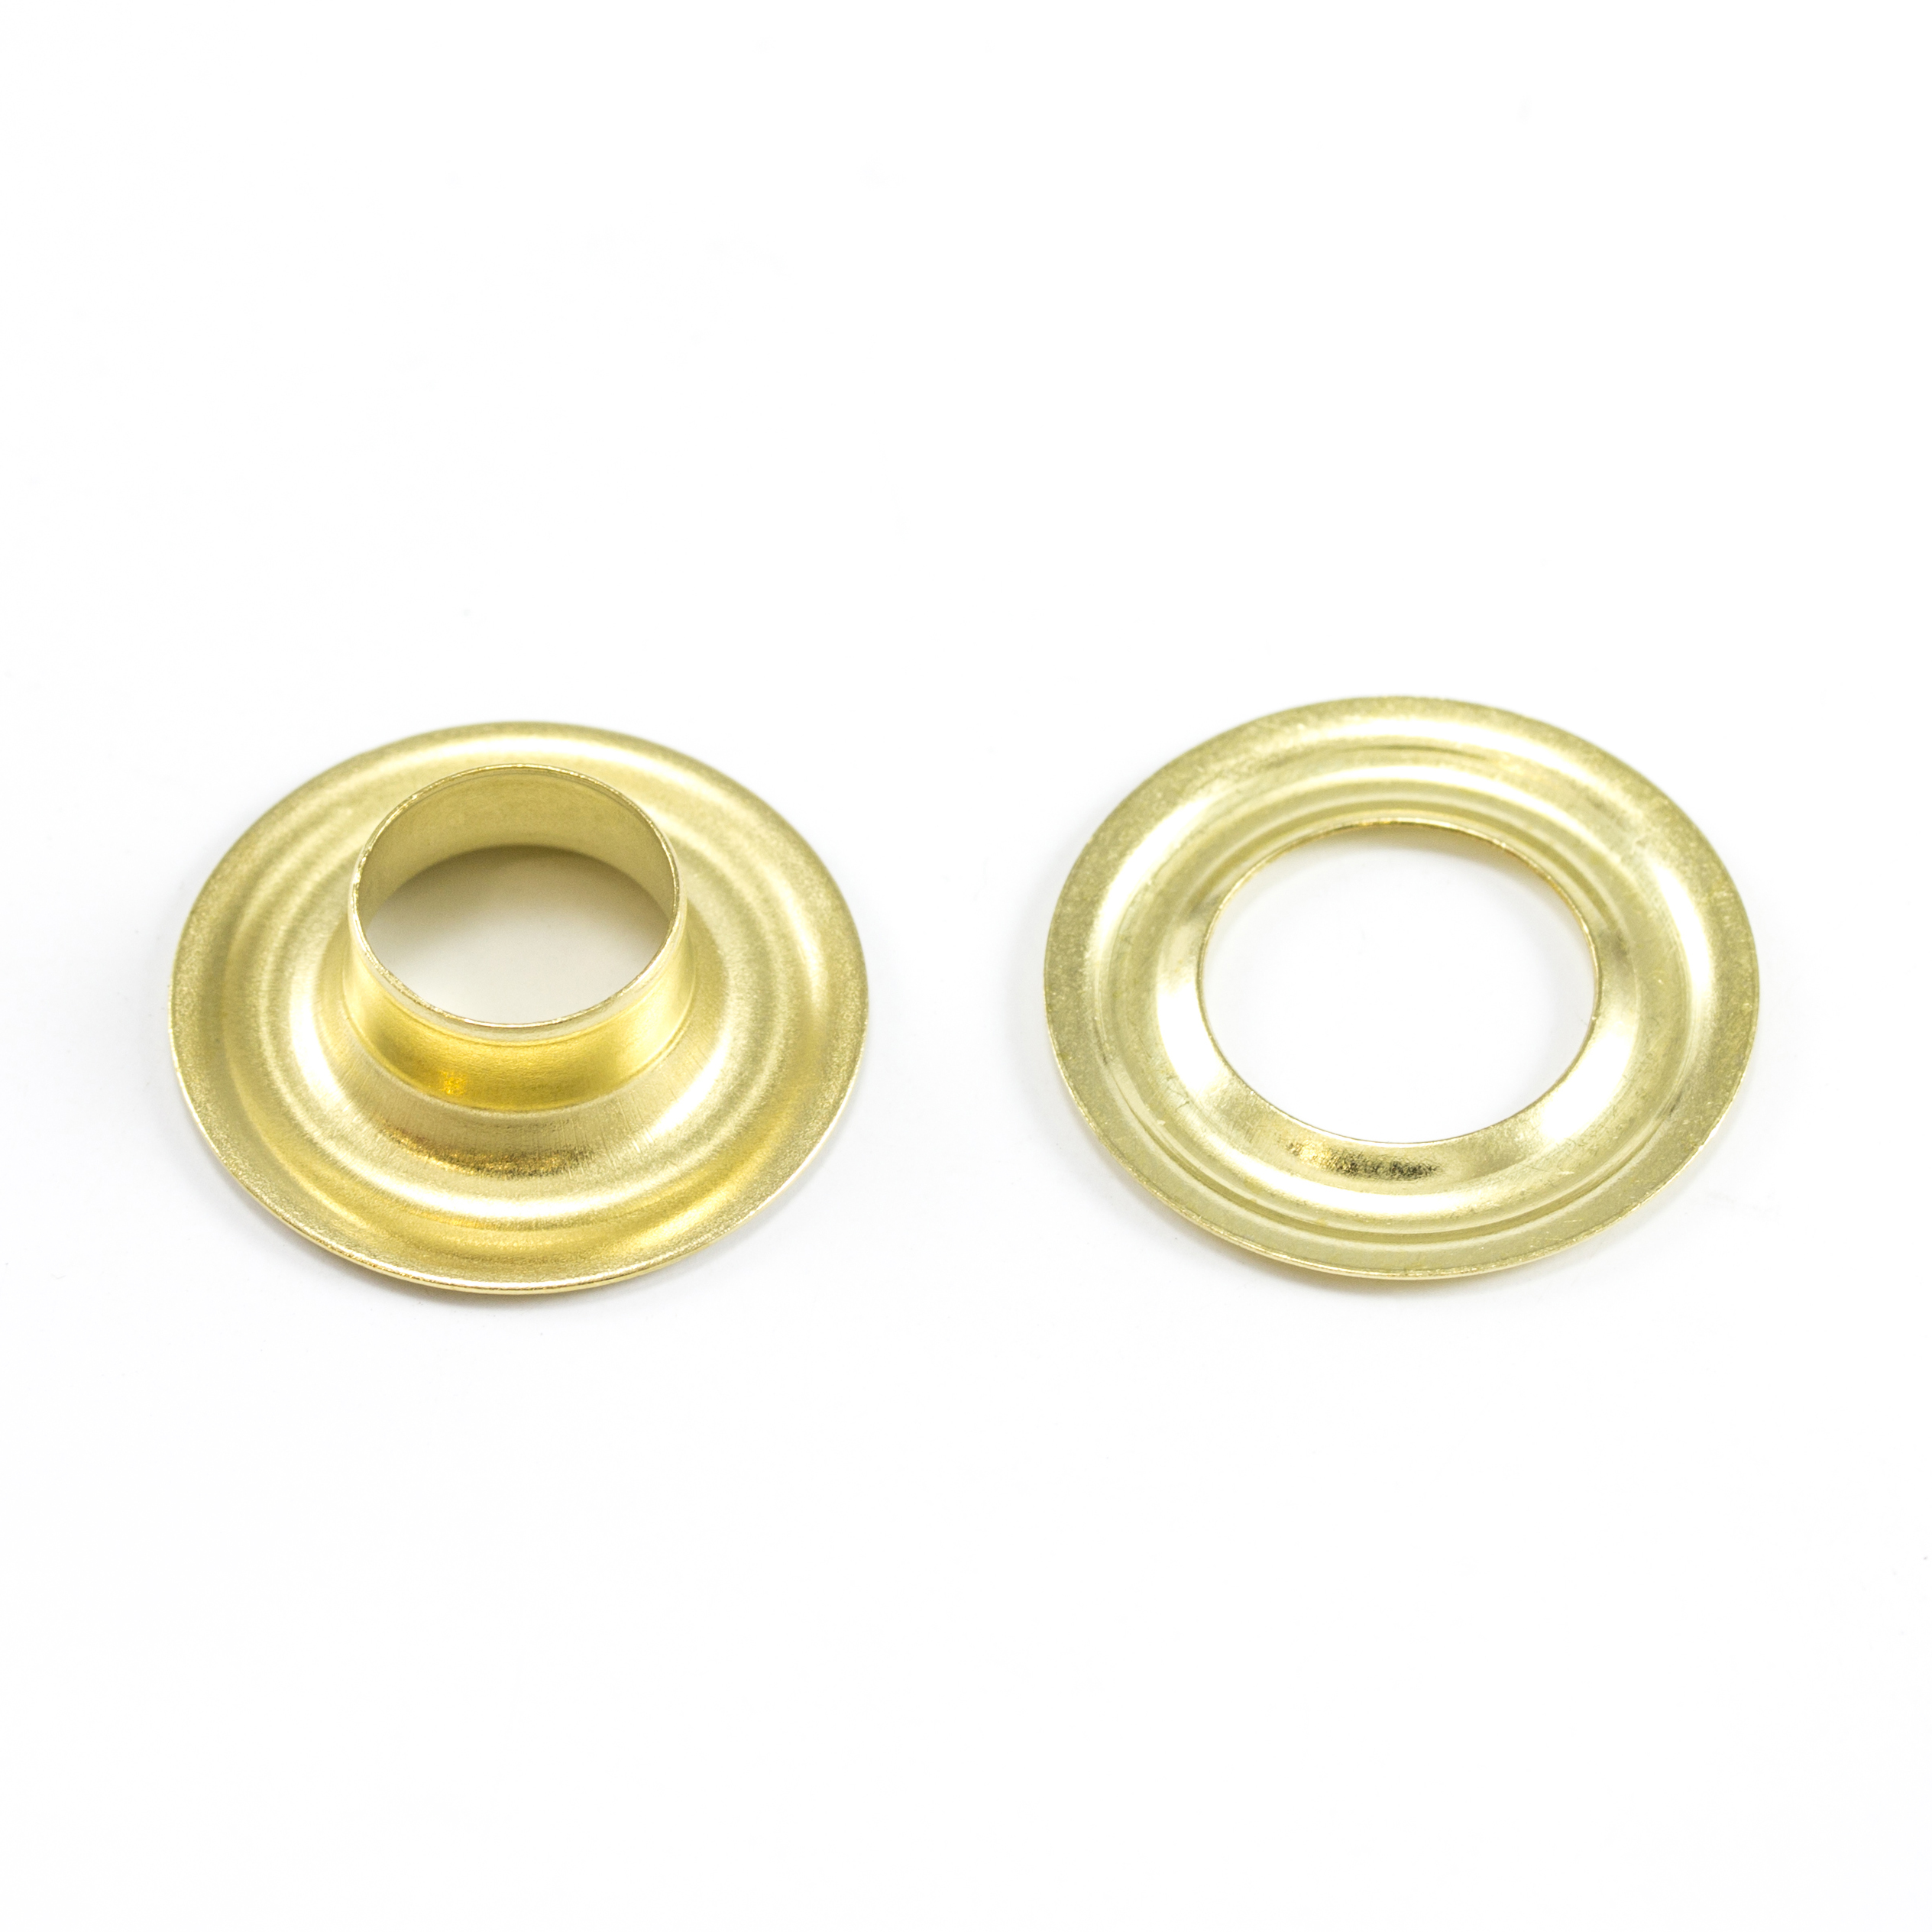 DOT Grommet with Plain Washer #2 Brass 3/8